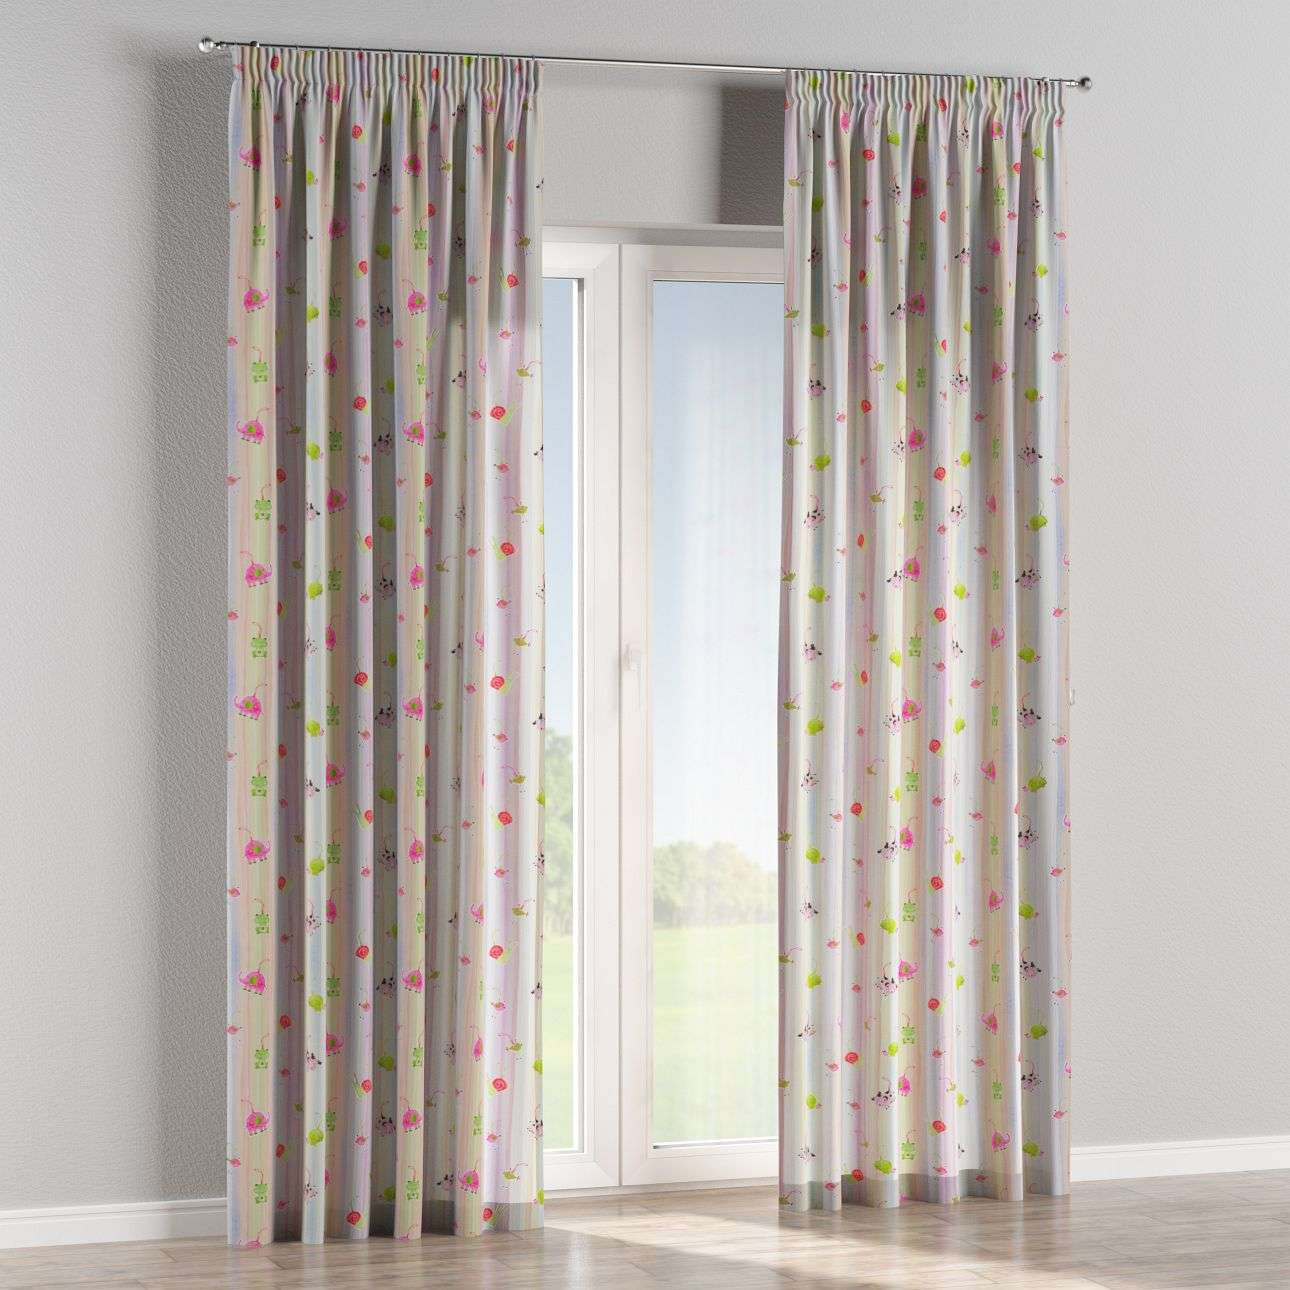 Pencil pleat curtains 130 x 260 cm (51 x 102 inch) in collection Apanona, fabric: 151-05